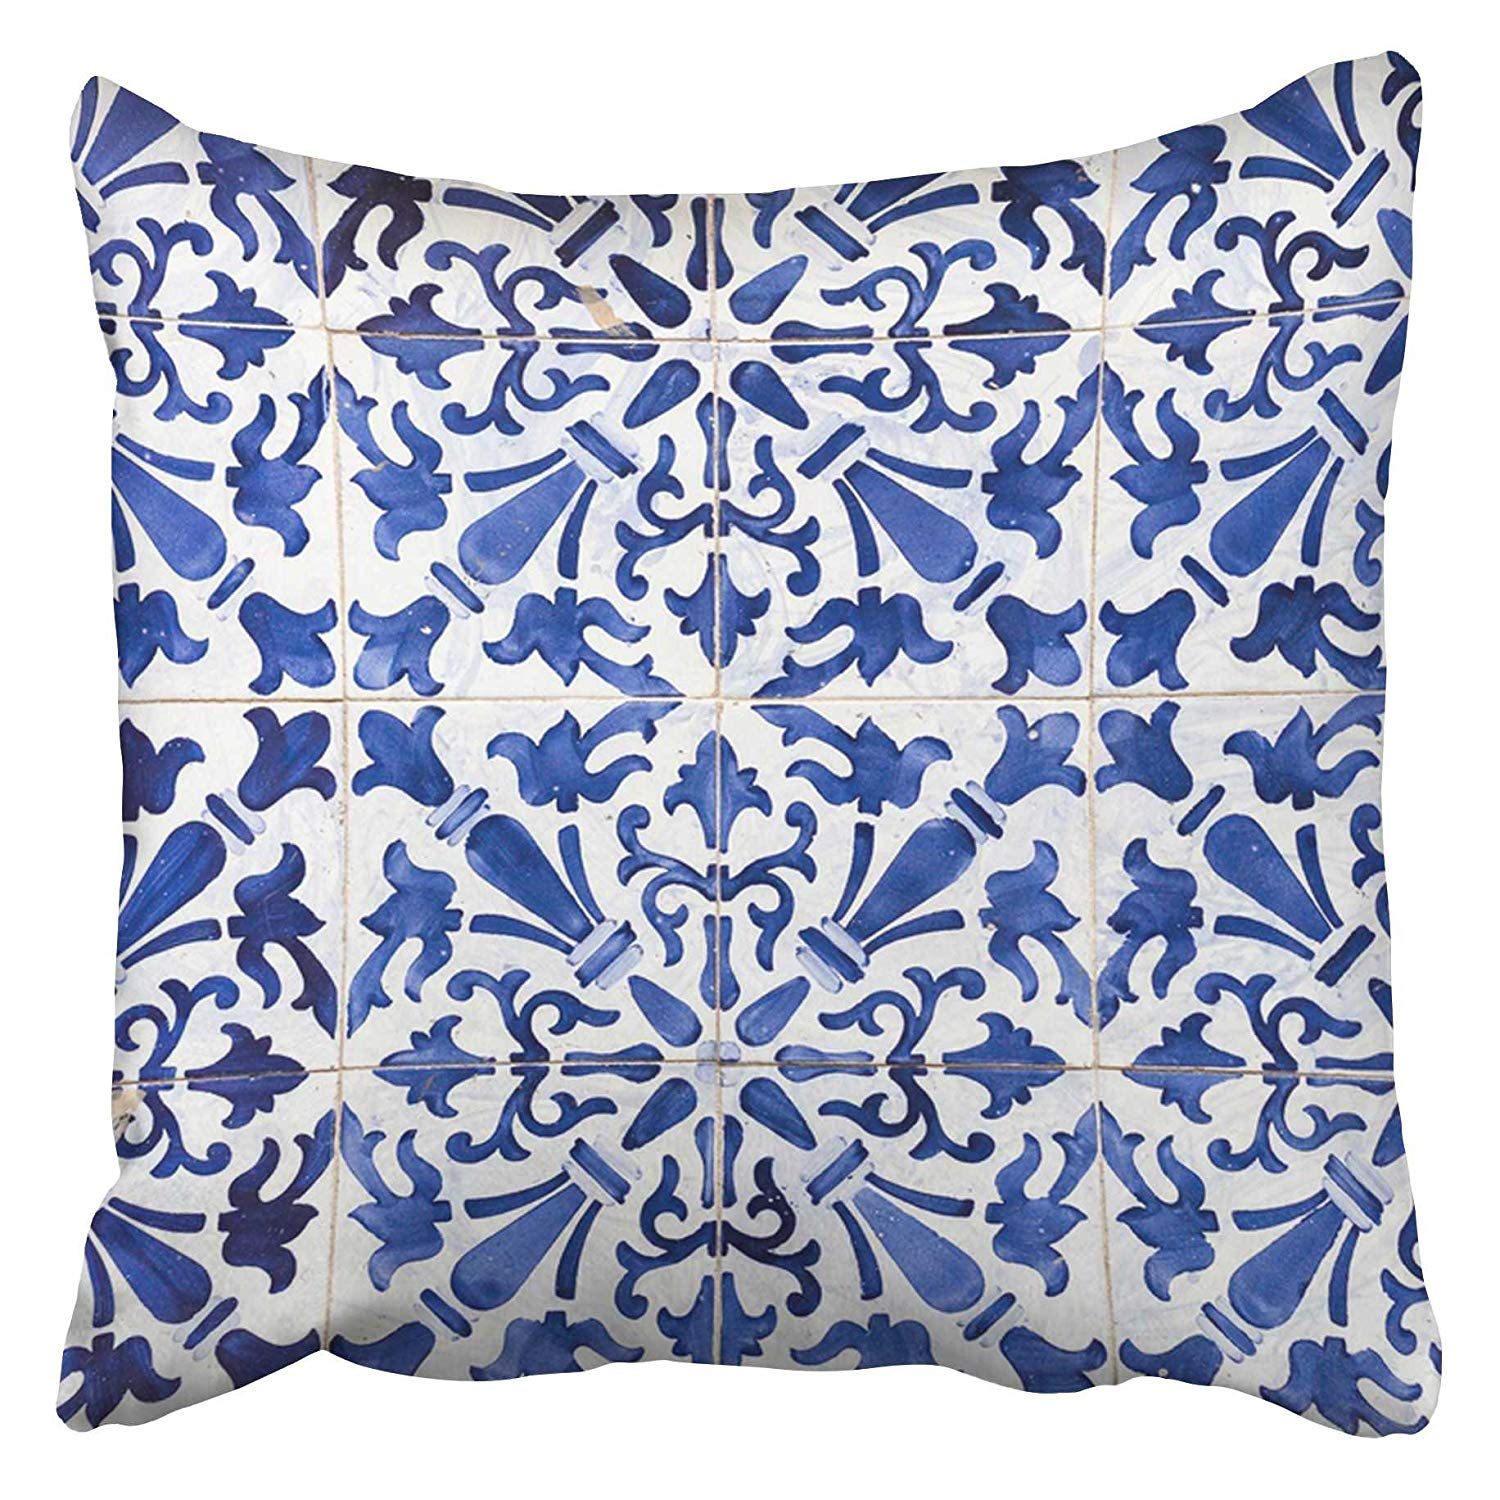 Throw Pillow Covers Cases Ative 16x16 Inch Blue Vintage Traditional Ornate Portuguese Tiles Azulejos Colorful